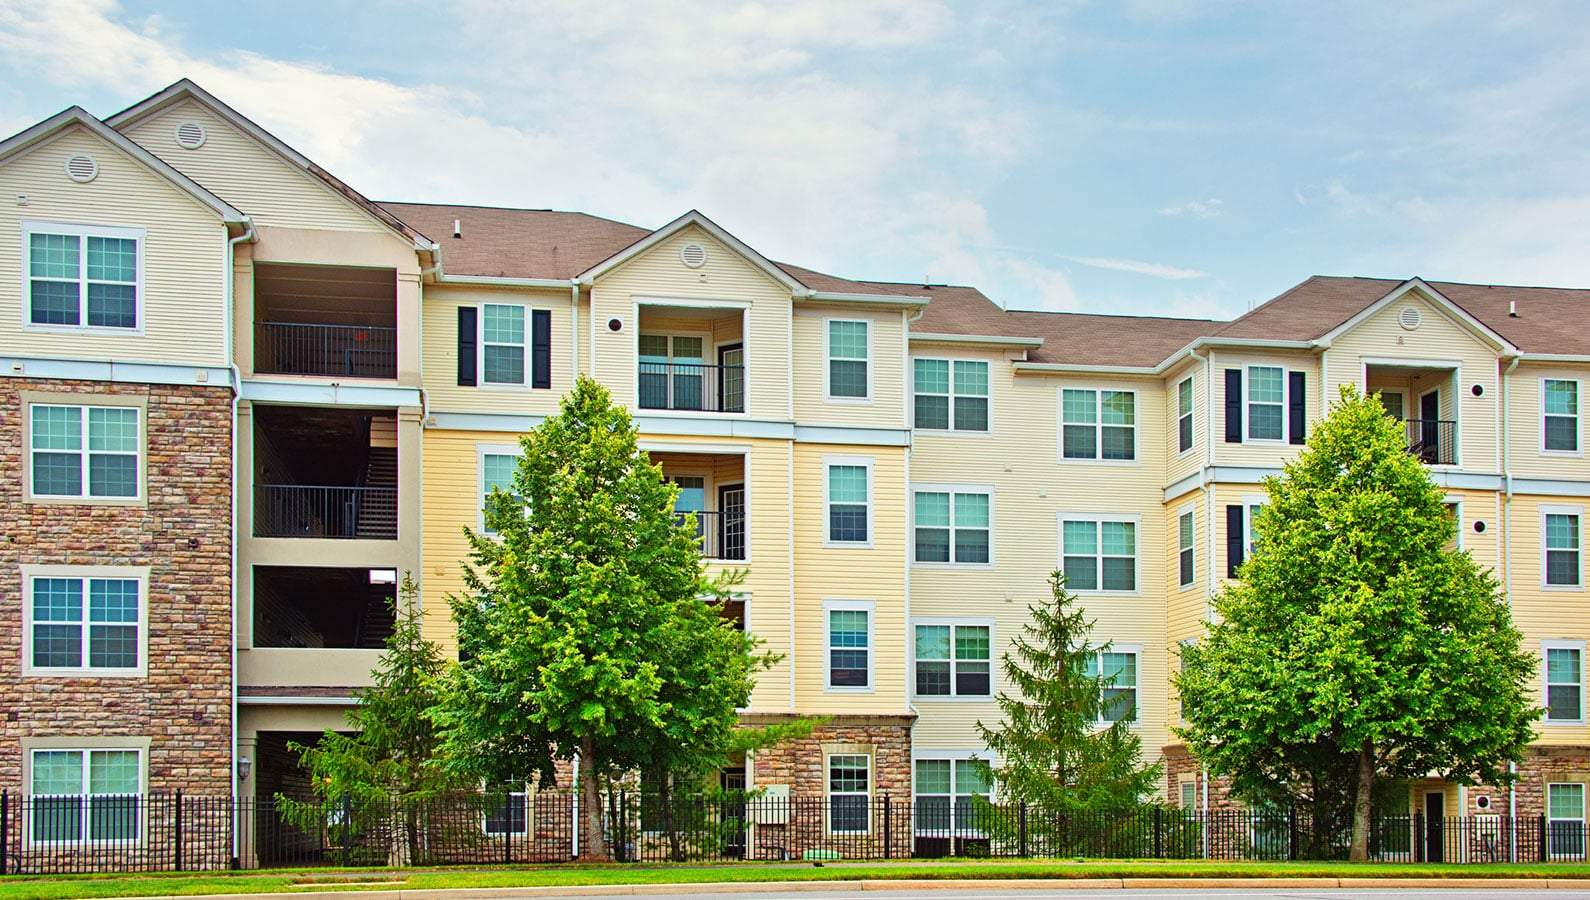 commercial multifamily real estate has low volatility